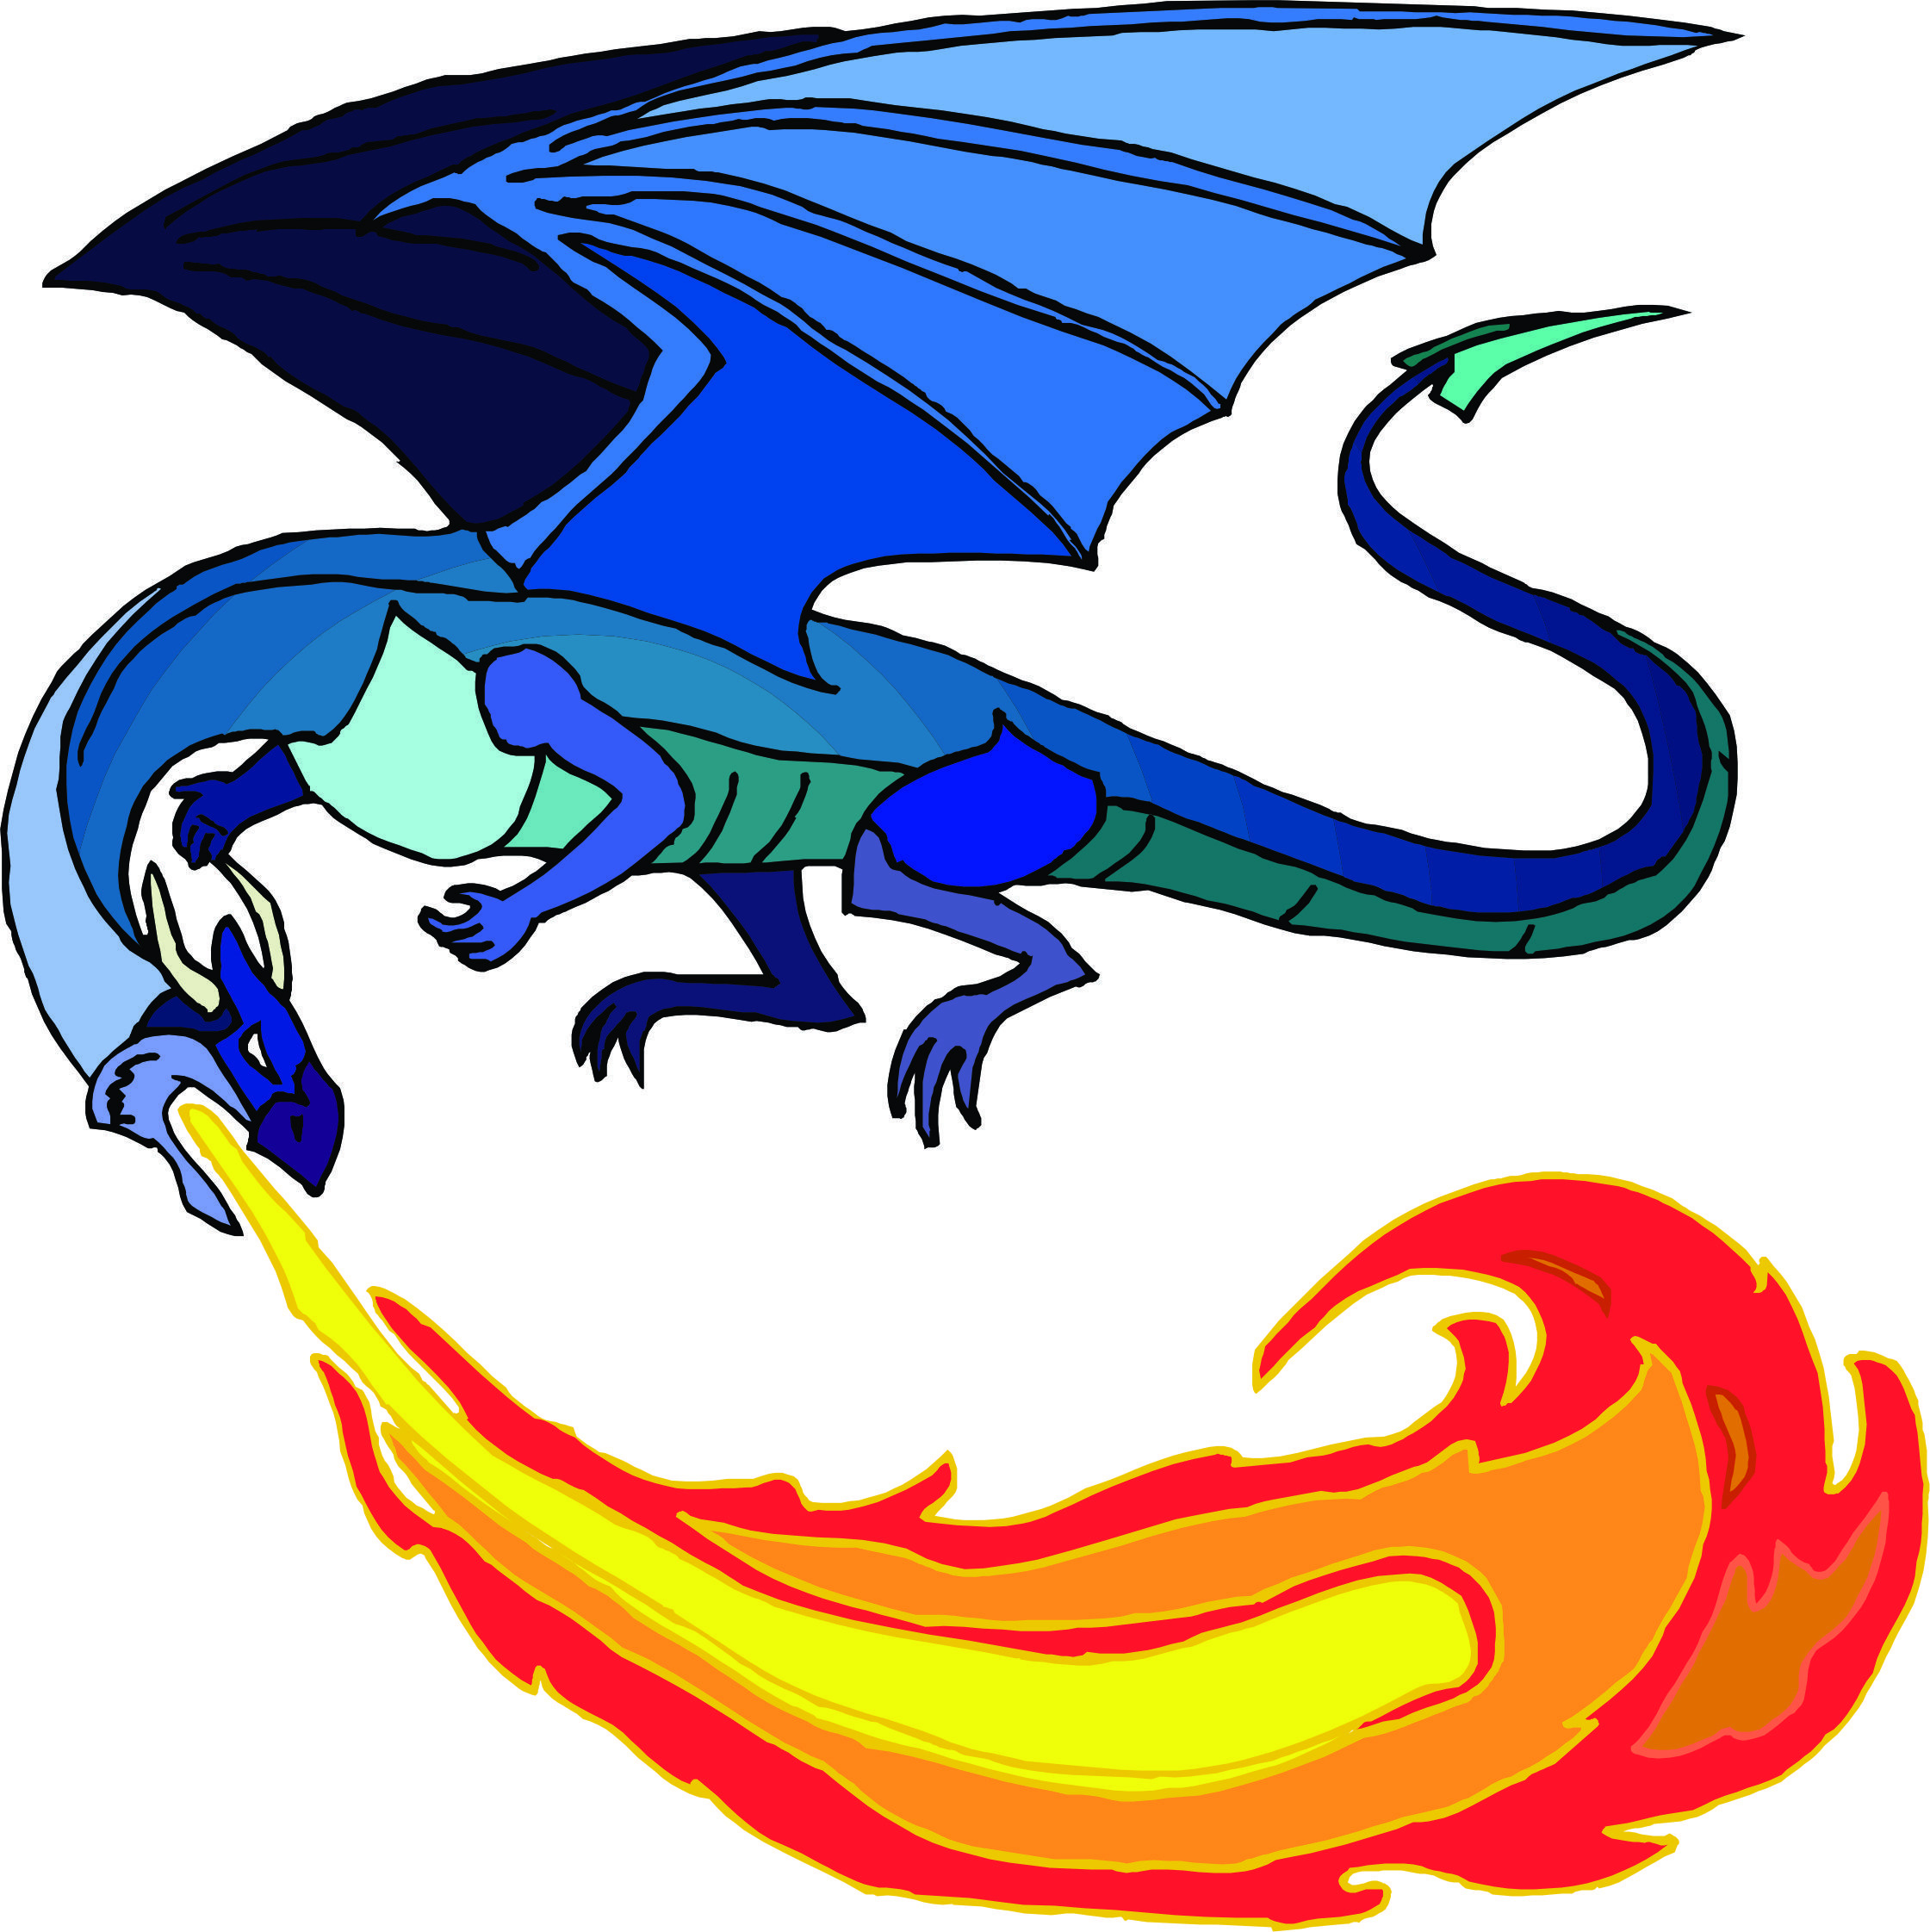 Fire breathing dragon clipart 9 » Clipart Station.